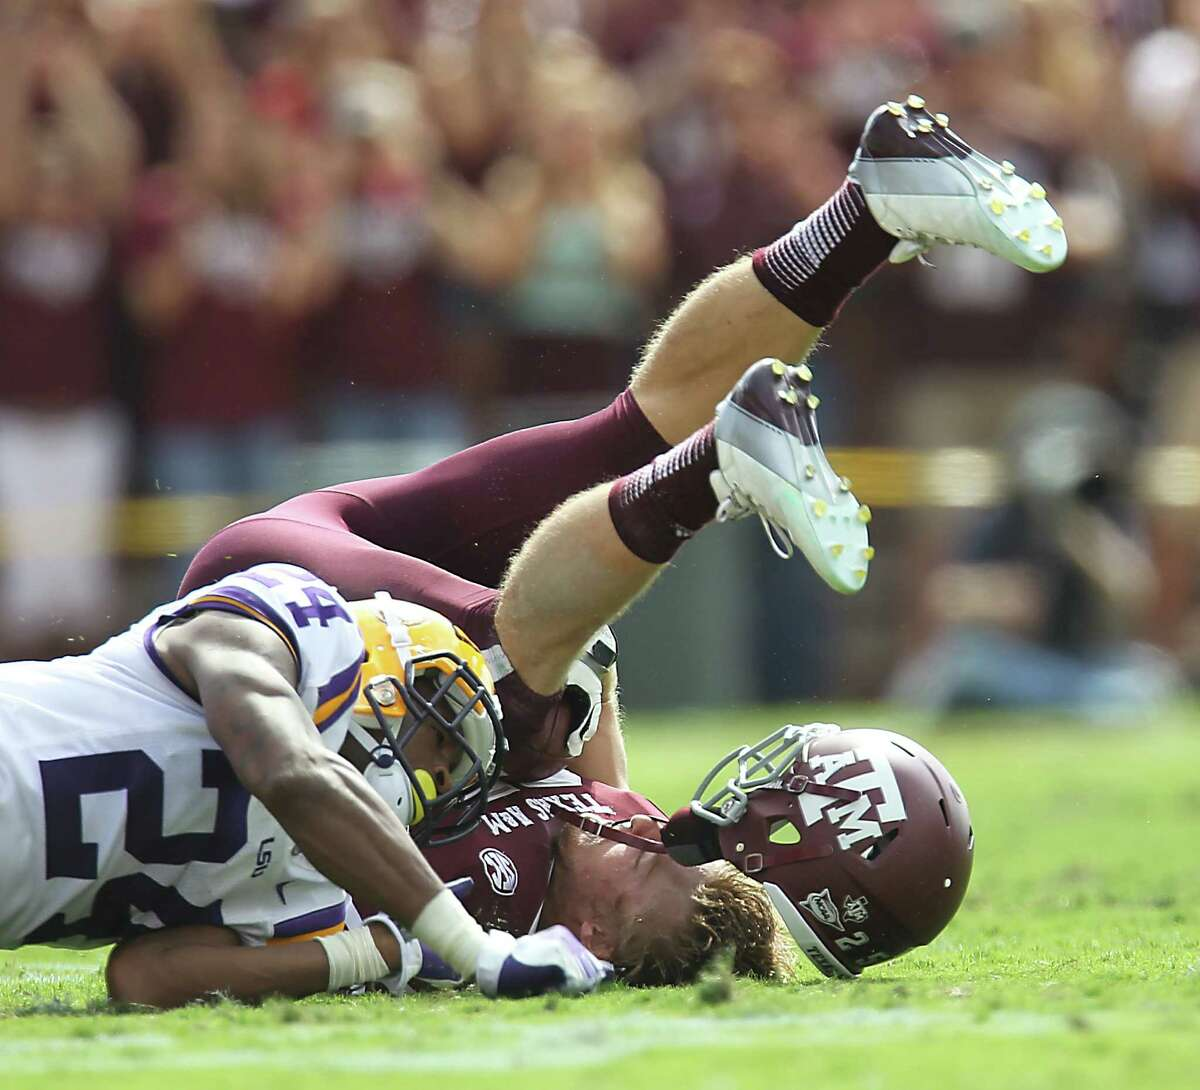 Despite suffering four concussions in four seasons, Texas A&M's Ryan Swope has established himself as one of the program's top all-time receivers.